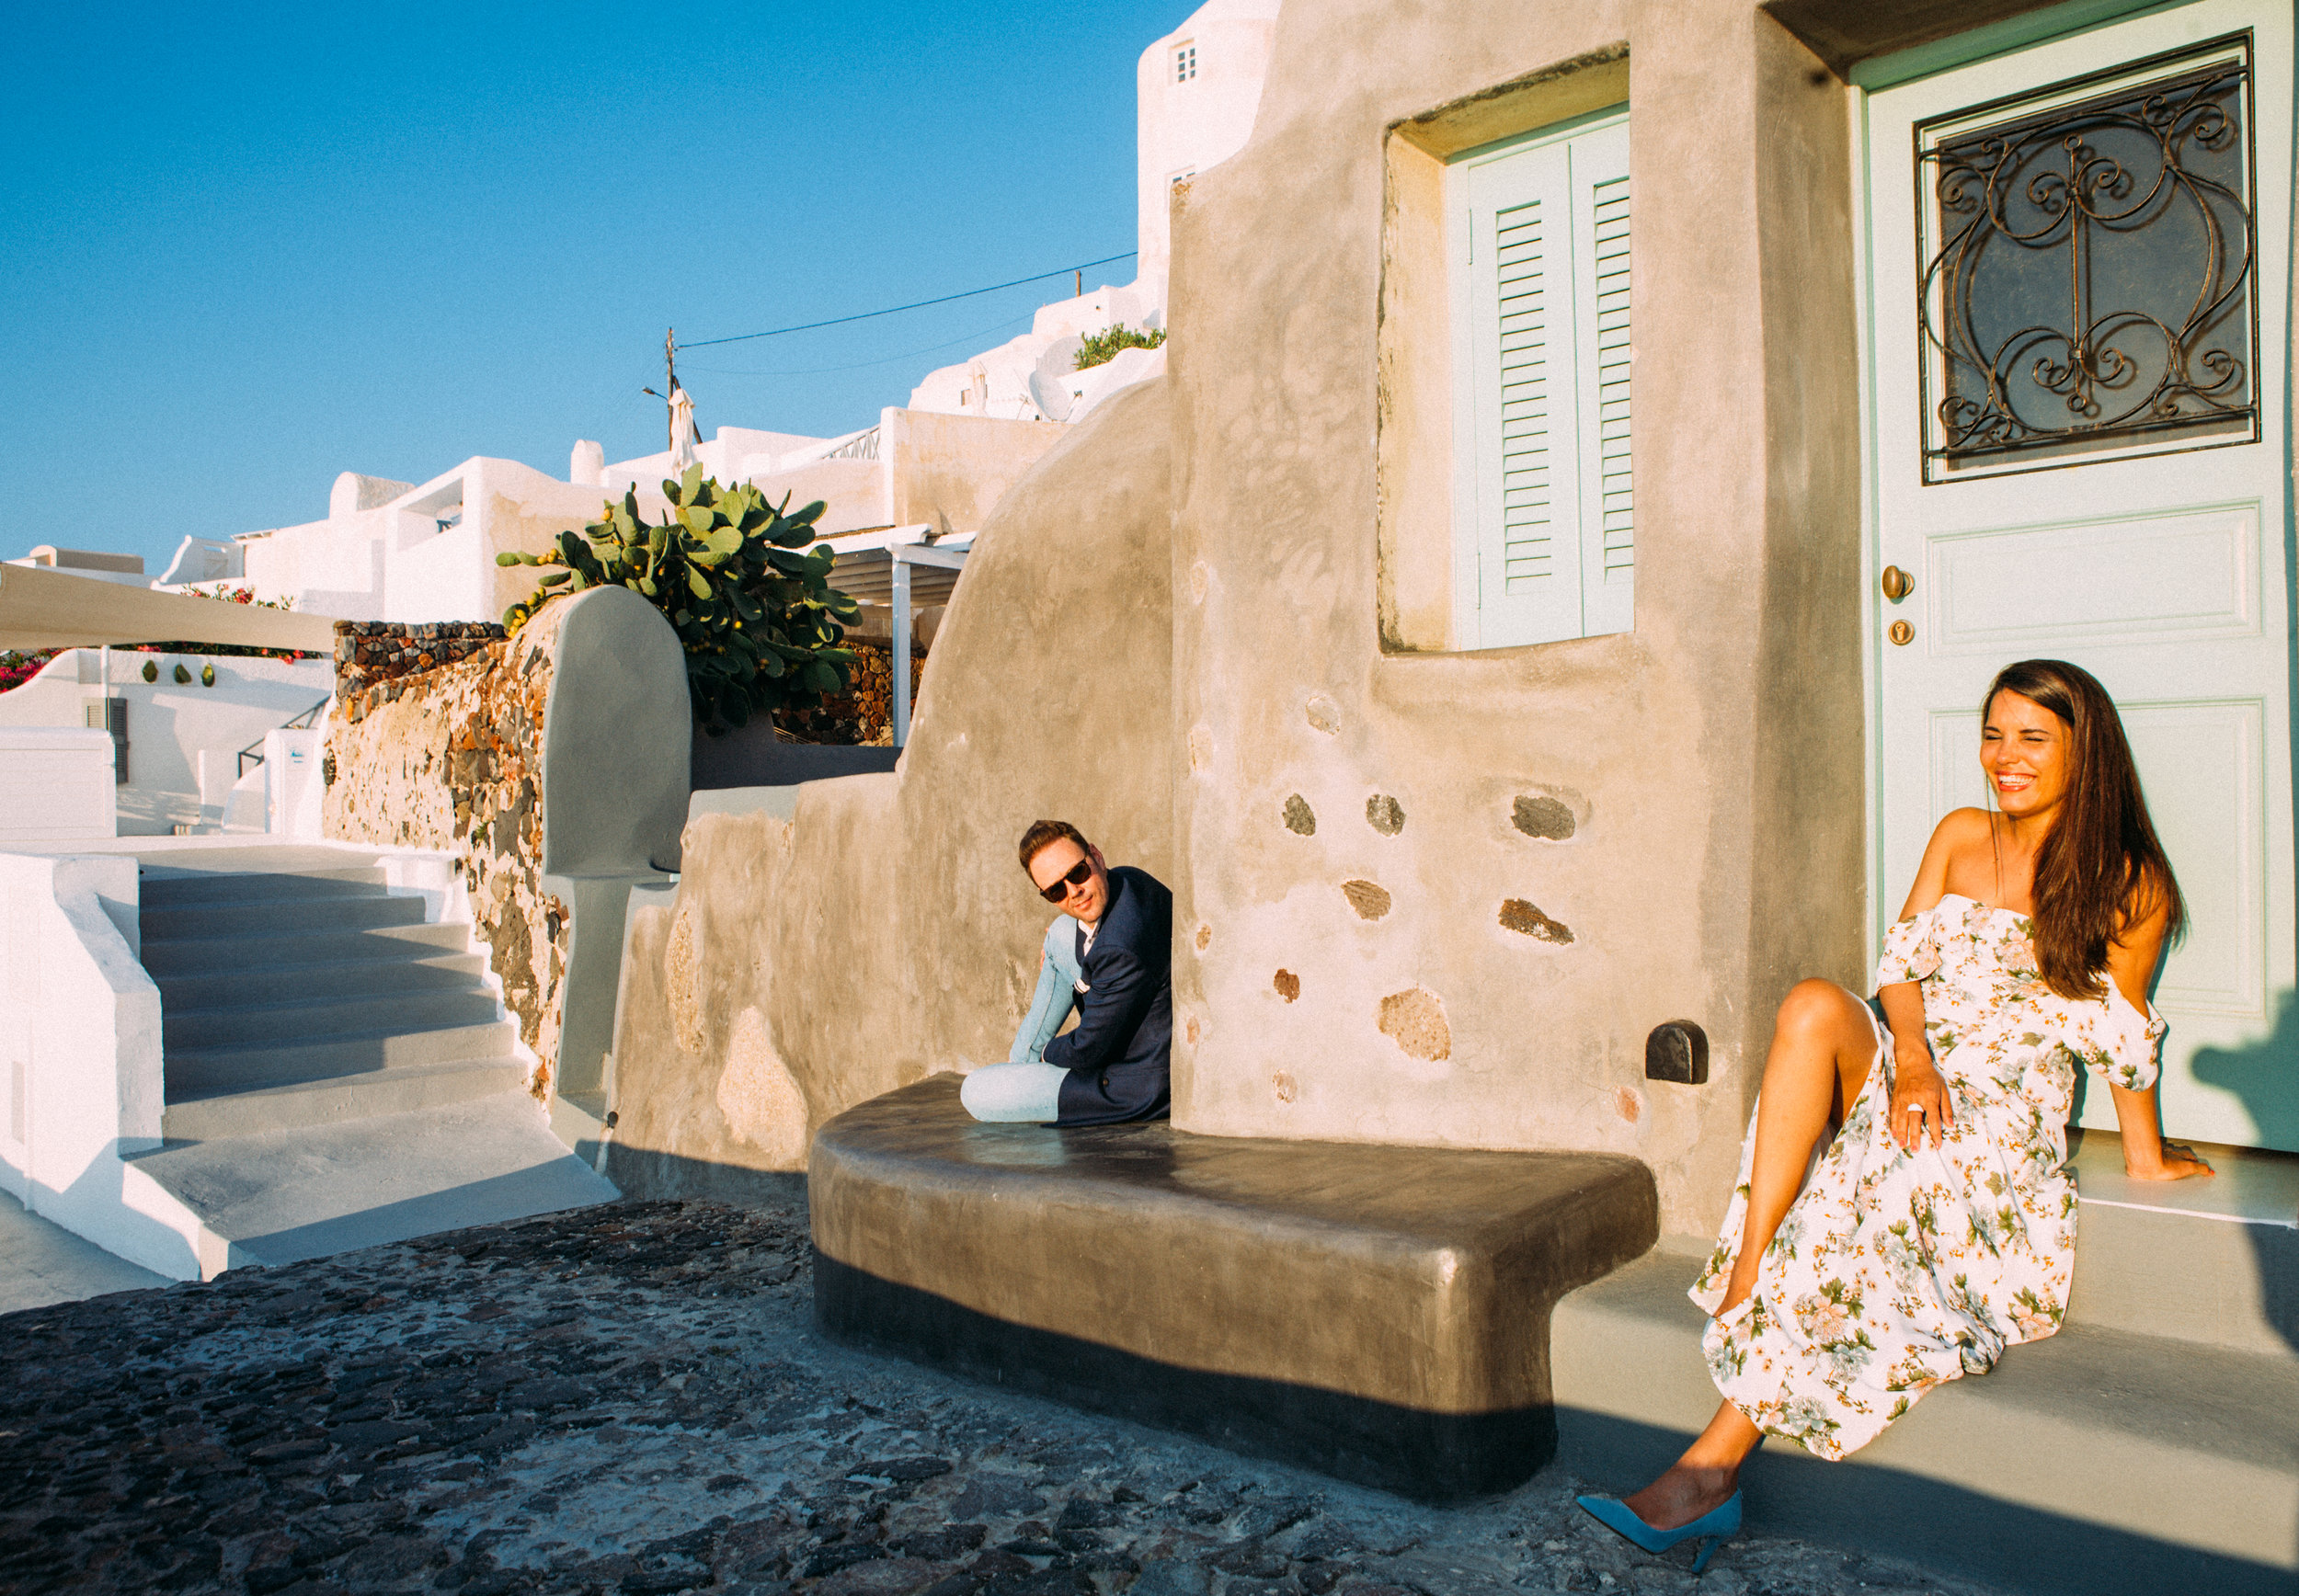 santorini_photoshootings.jpg